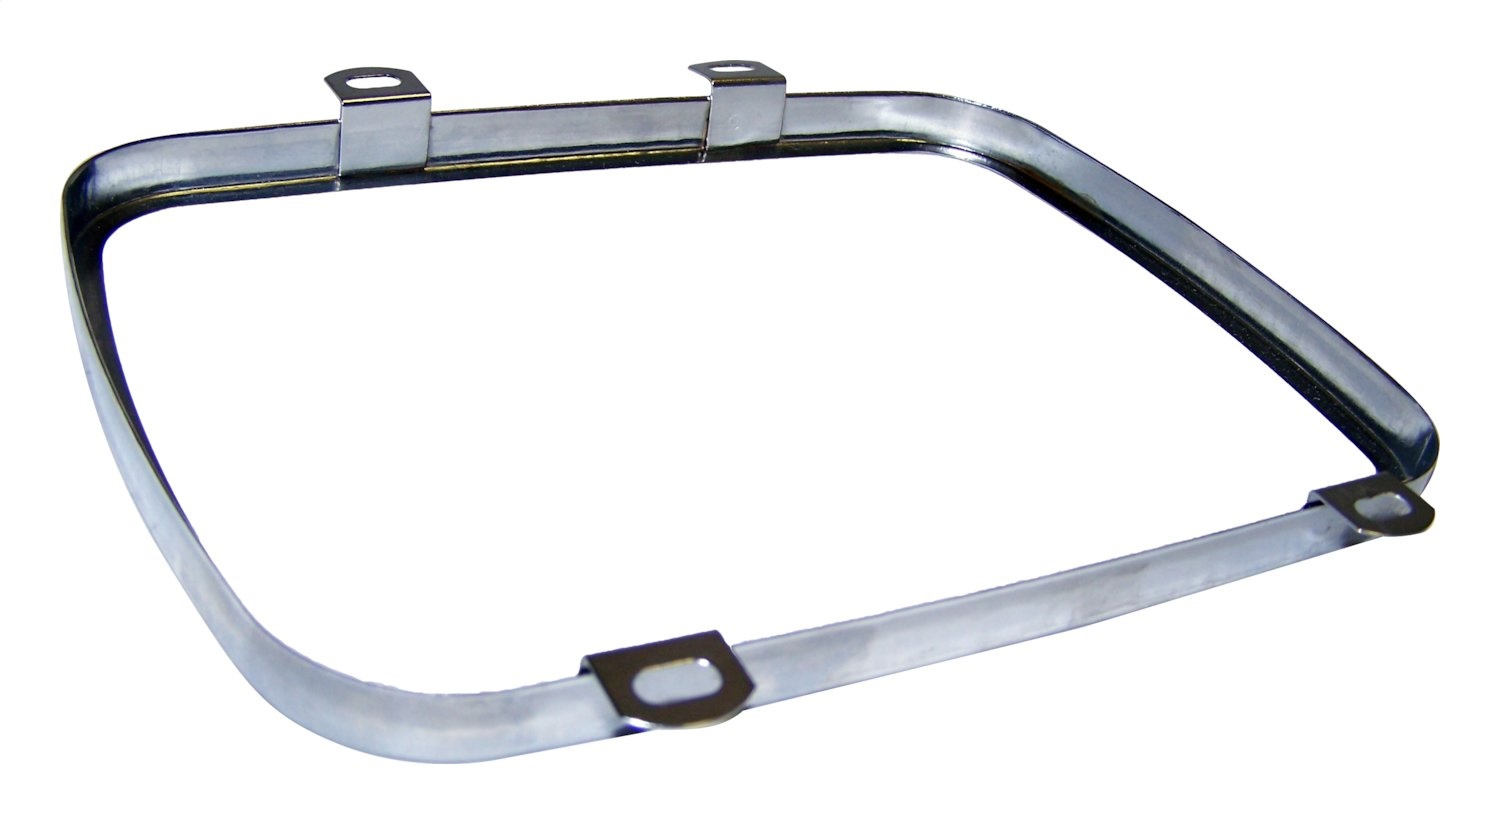 Crown Automotive 56001260 Head Light Retaining Ring Fits 84-97 Cherokee Wrangler